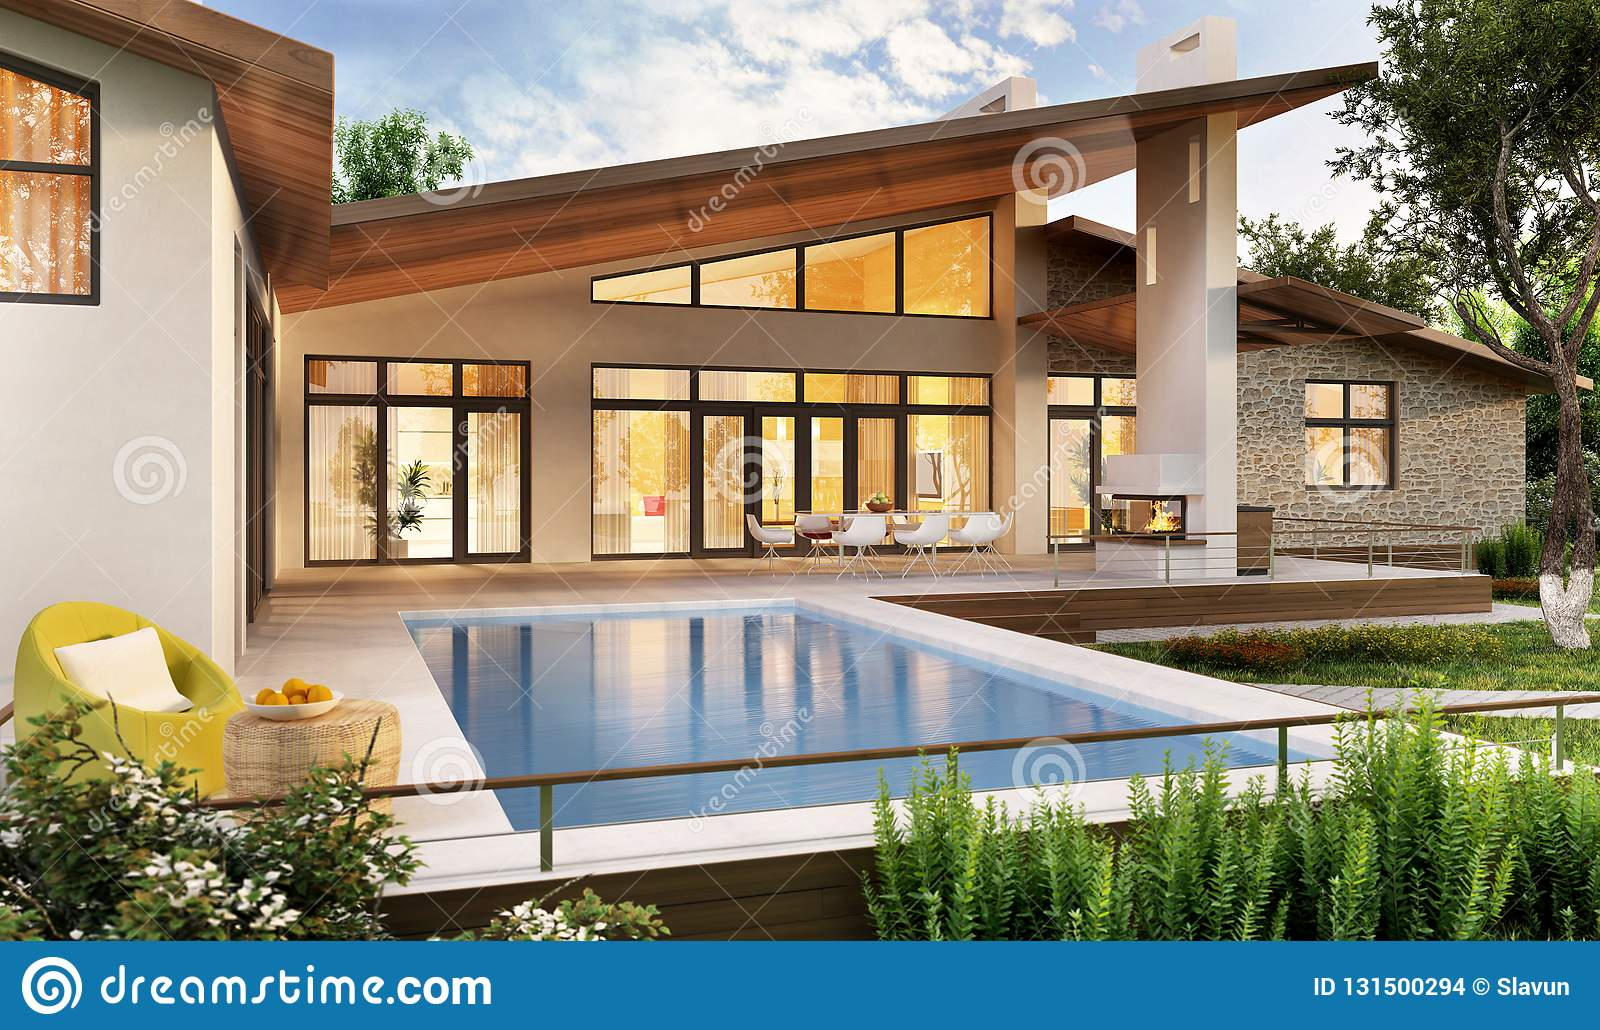 Exterior And Interior Design Of A Modern House With A Pool ...